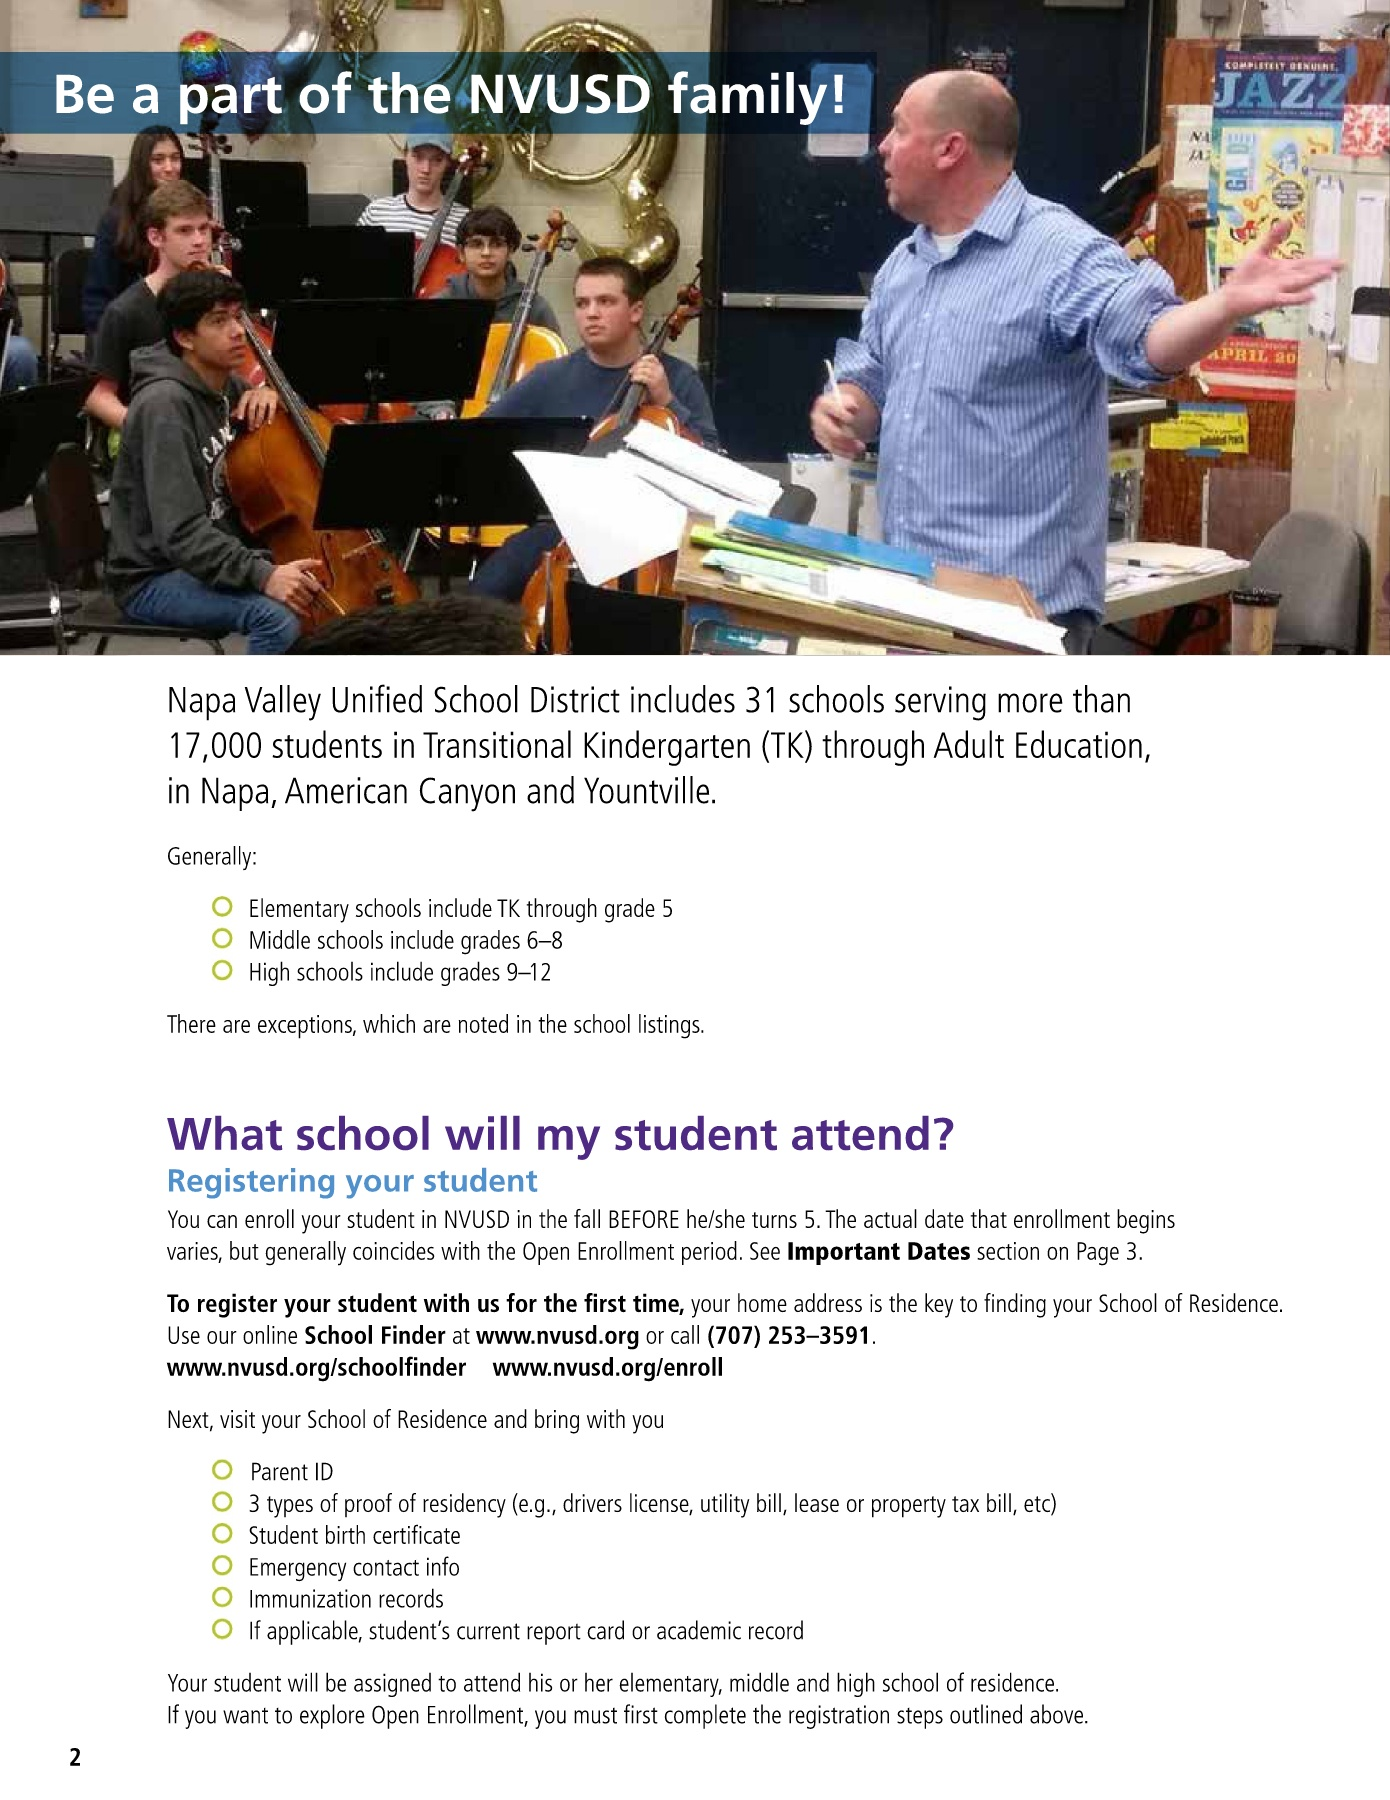 NVUSD Parent Guide